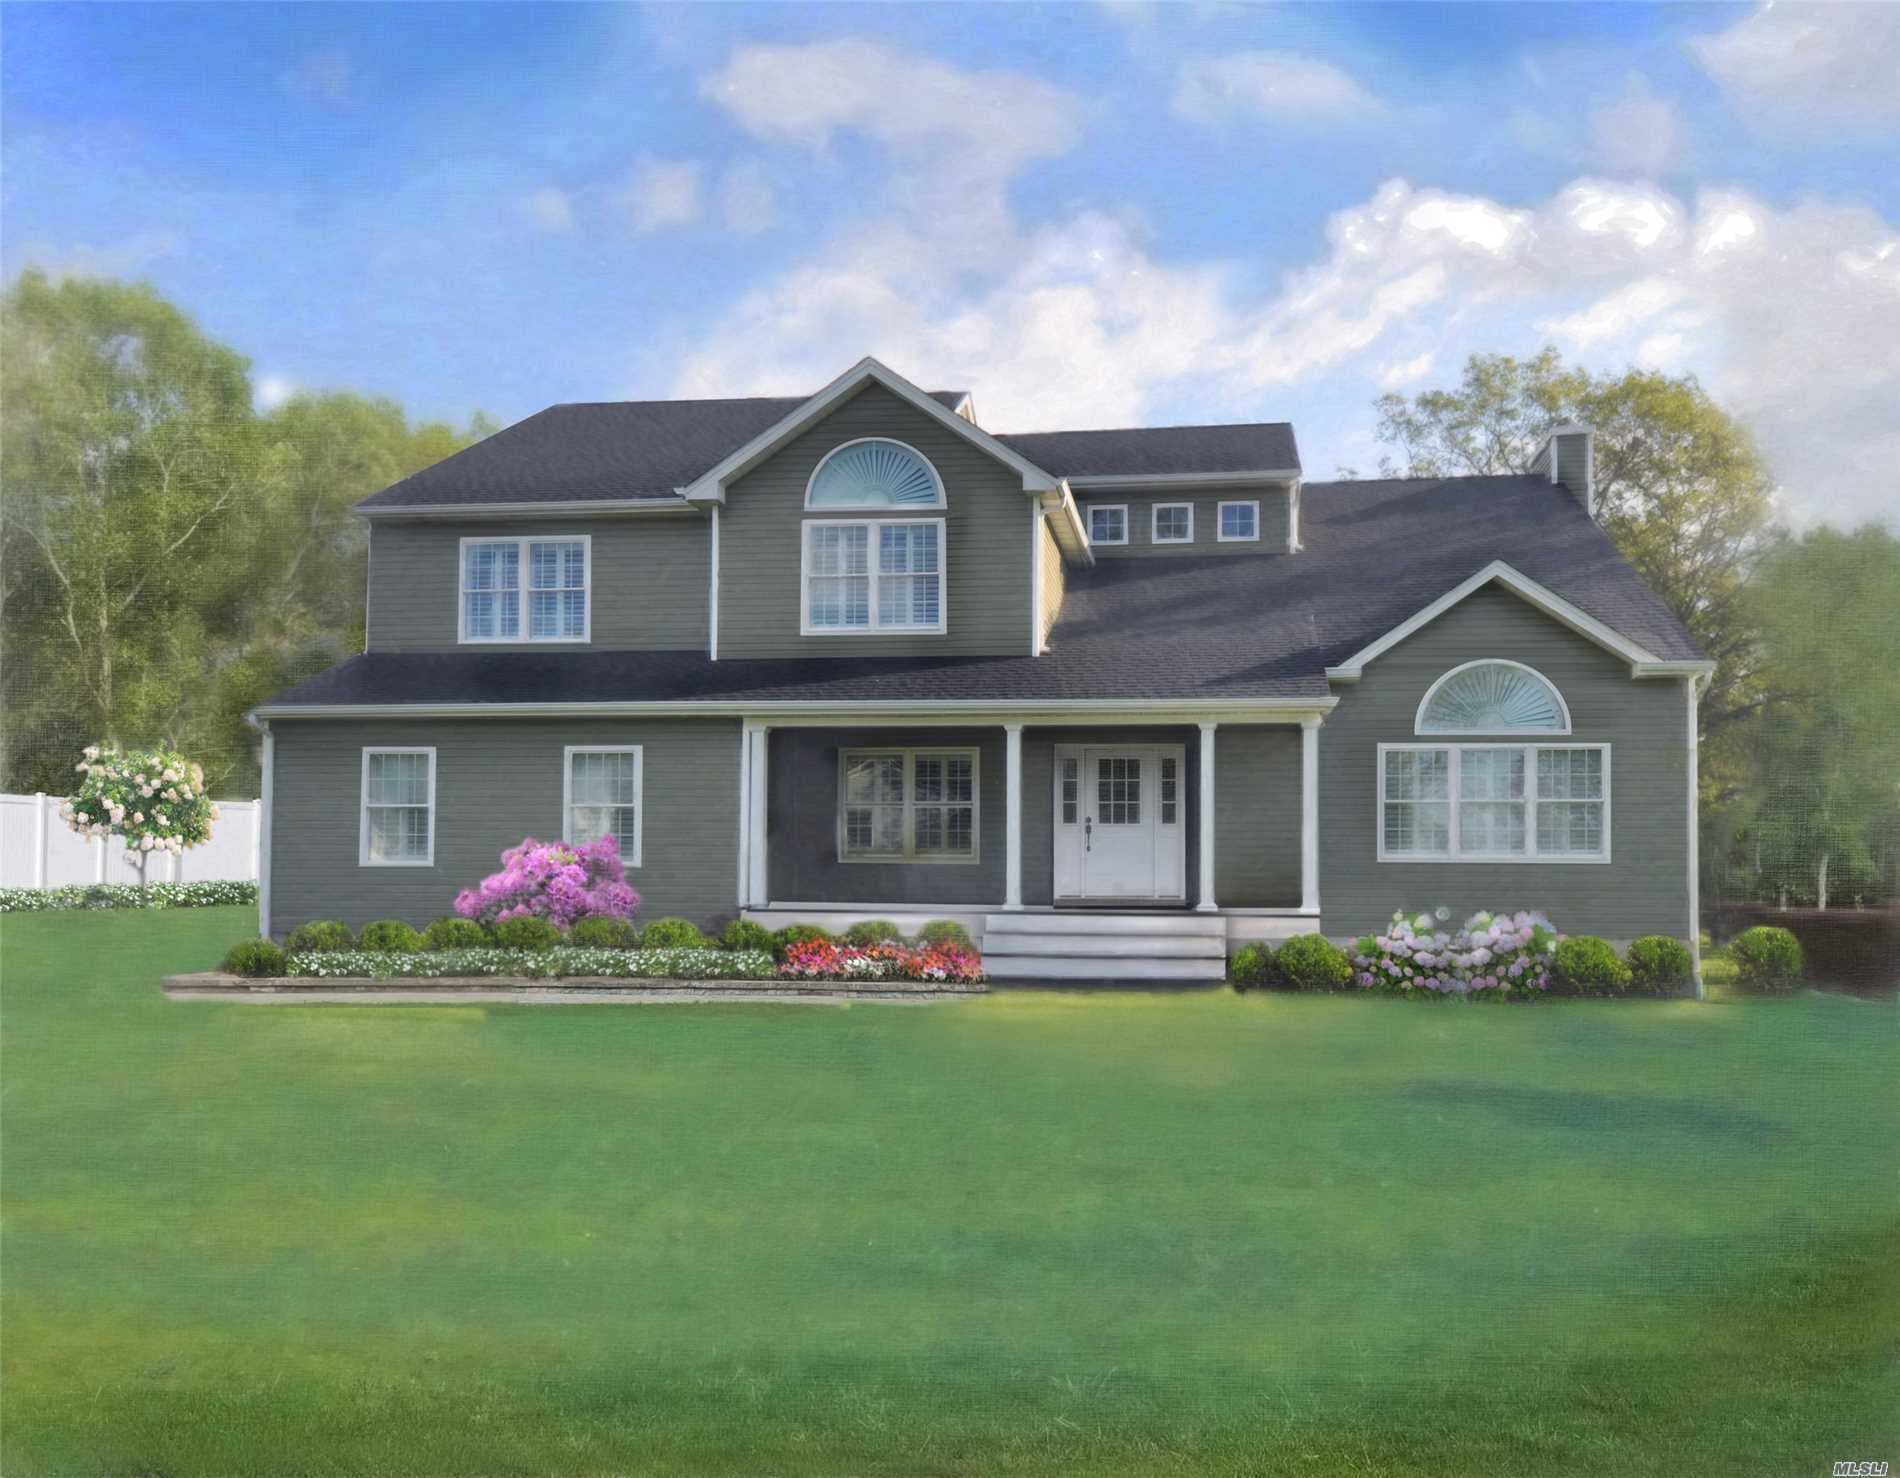 Construction Has Just Started!!!Largest Brand New Development In Town Just Unveiled- 59 Brand New Custom Fully Detached Homes On 1/2 To 1Acre+ Private Lots. Luxury Amenities Inc In Pricing. 7 Models. As Little As $2500 On Contract New Homes Ranging From $400'S To $600'S. No Common Charges Or Hoa. Offering 6-18 Mo Extended Deliveries. Save $ While U Wait Or Sell Your Home.